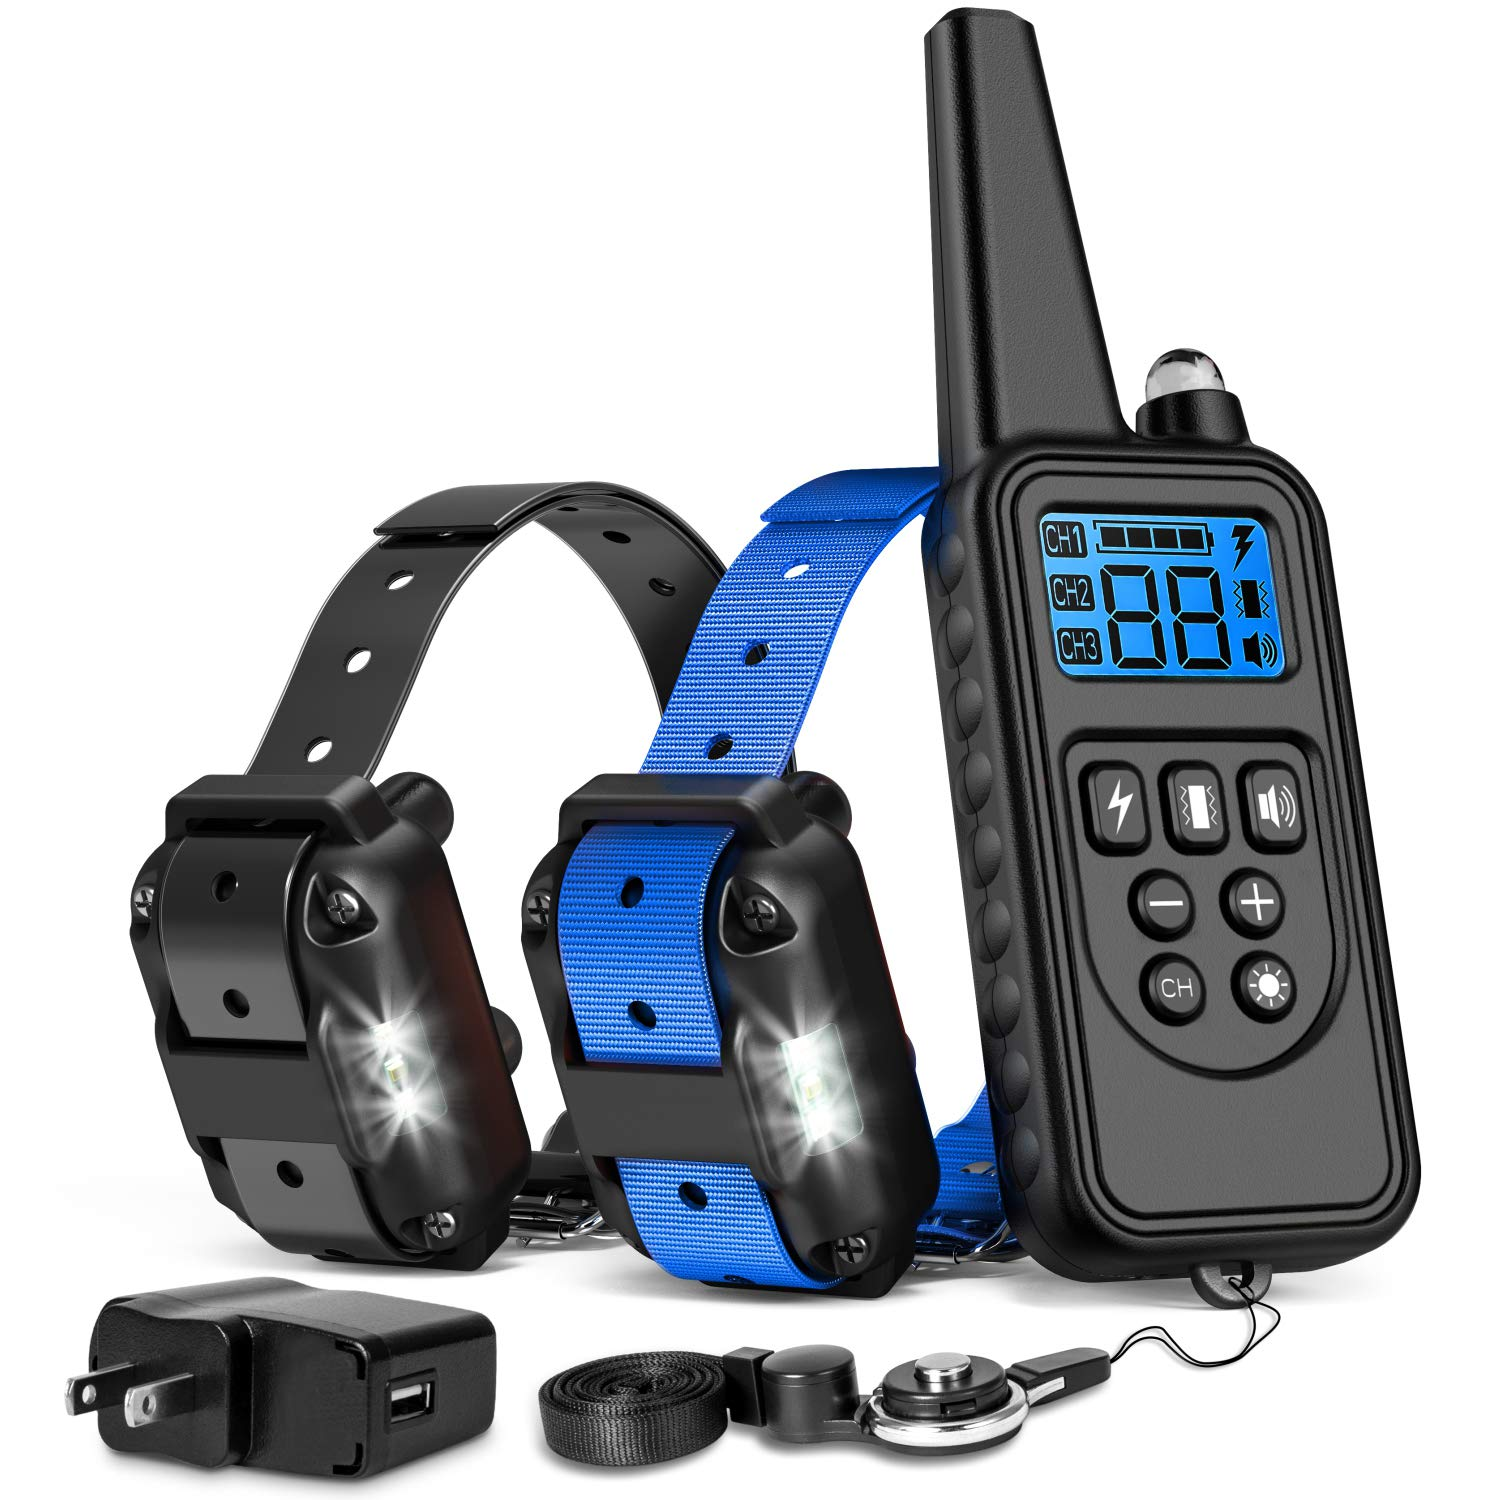 iSPECLE Shock Collar for Dogs, 2018 Upgraded Waterproof Dog Training Collar with Remote for Large Medium Dogs Long Range E Collars for Dogs with LED Light Shock Tone Vibration Neck Lanyard/Adapter